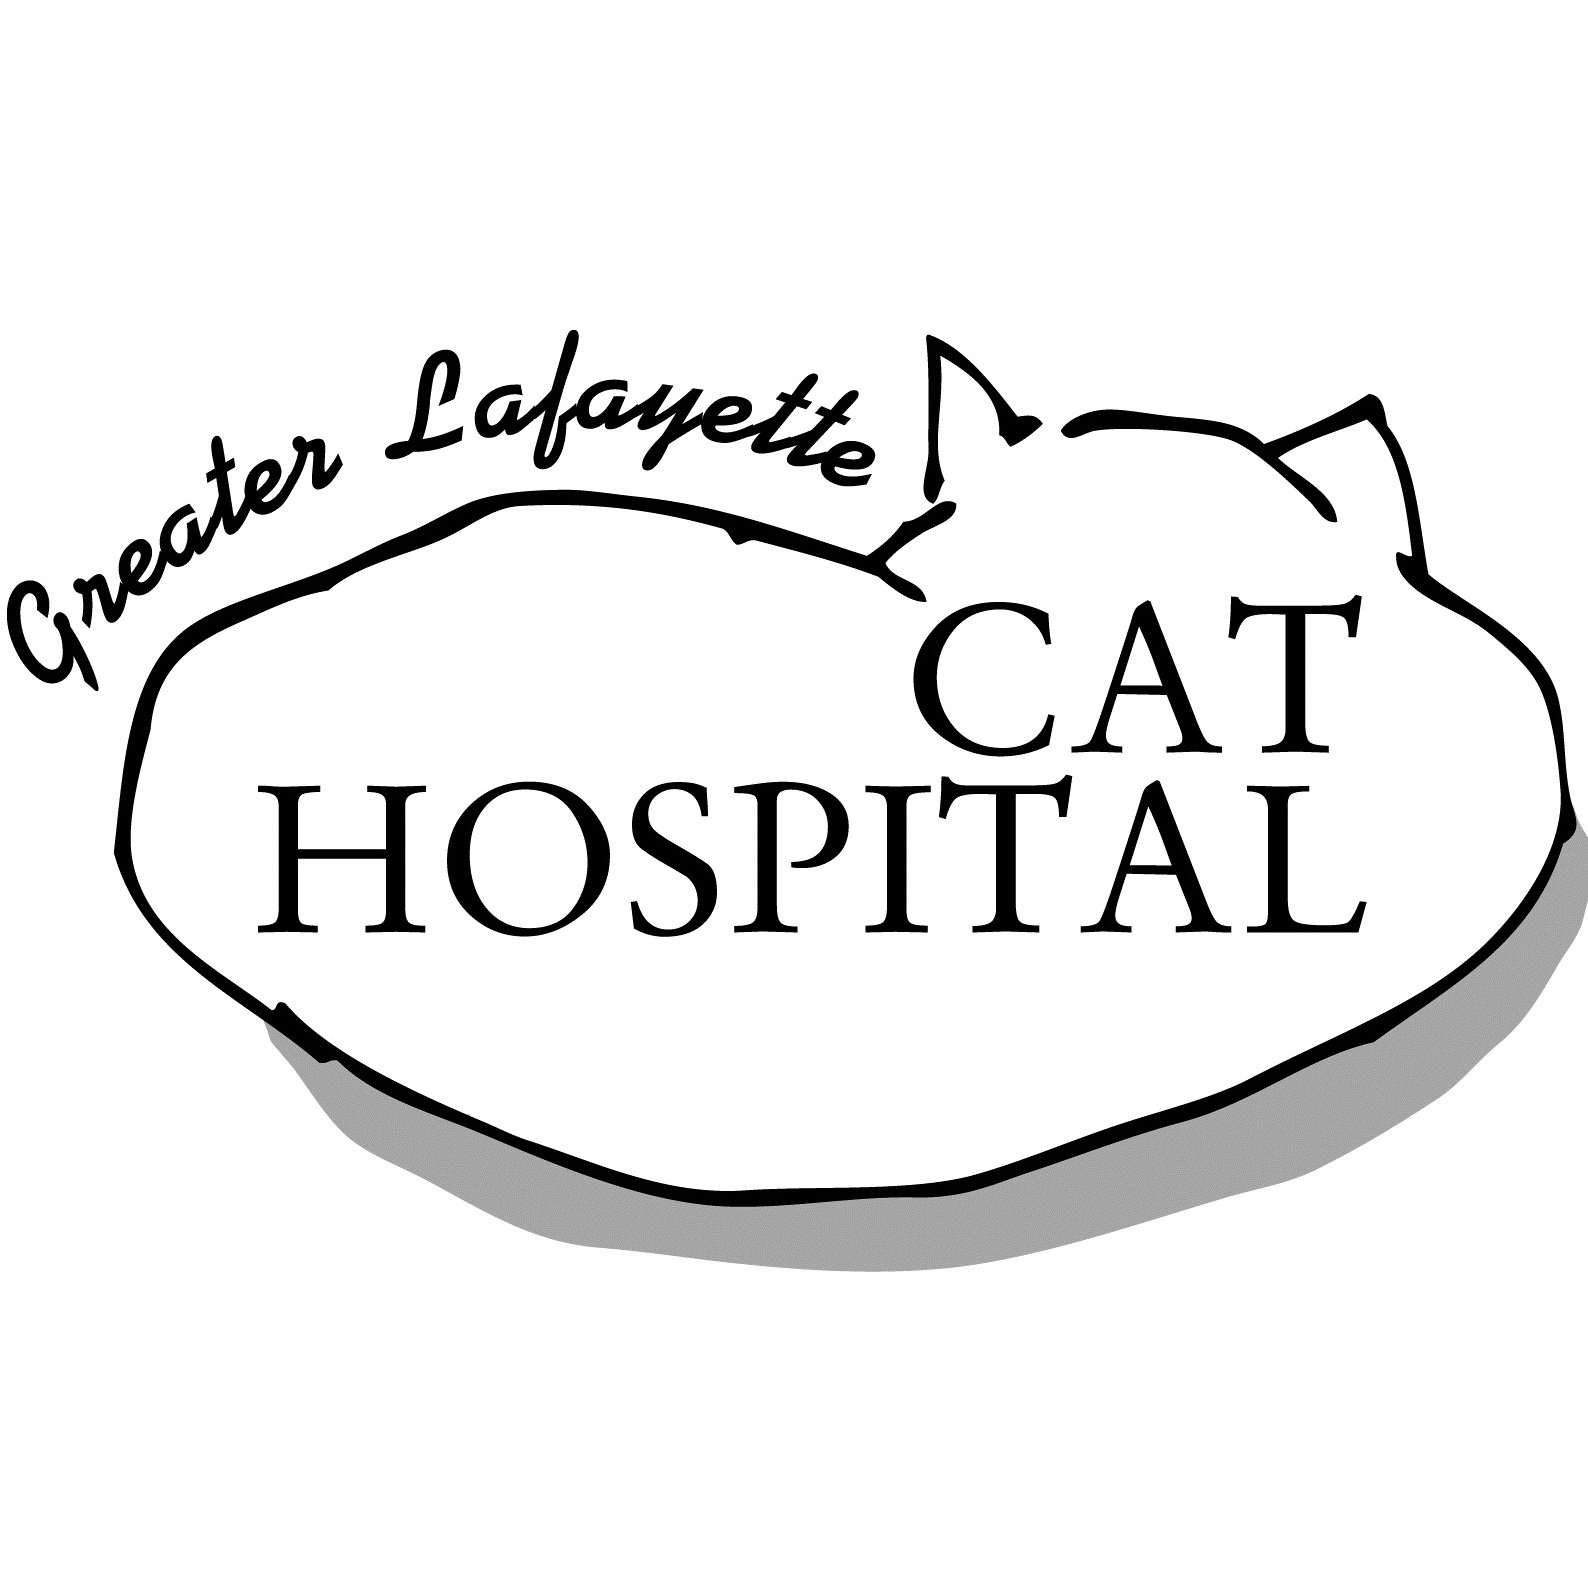 Greater Lafayette Cat Hospital